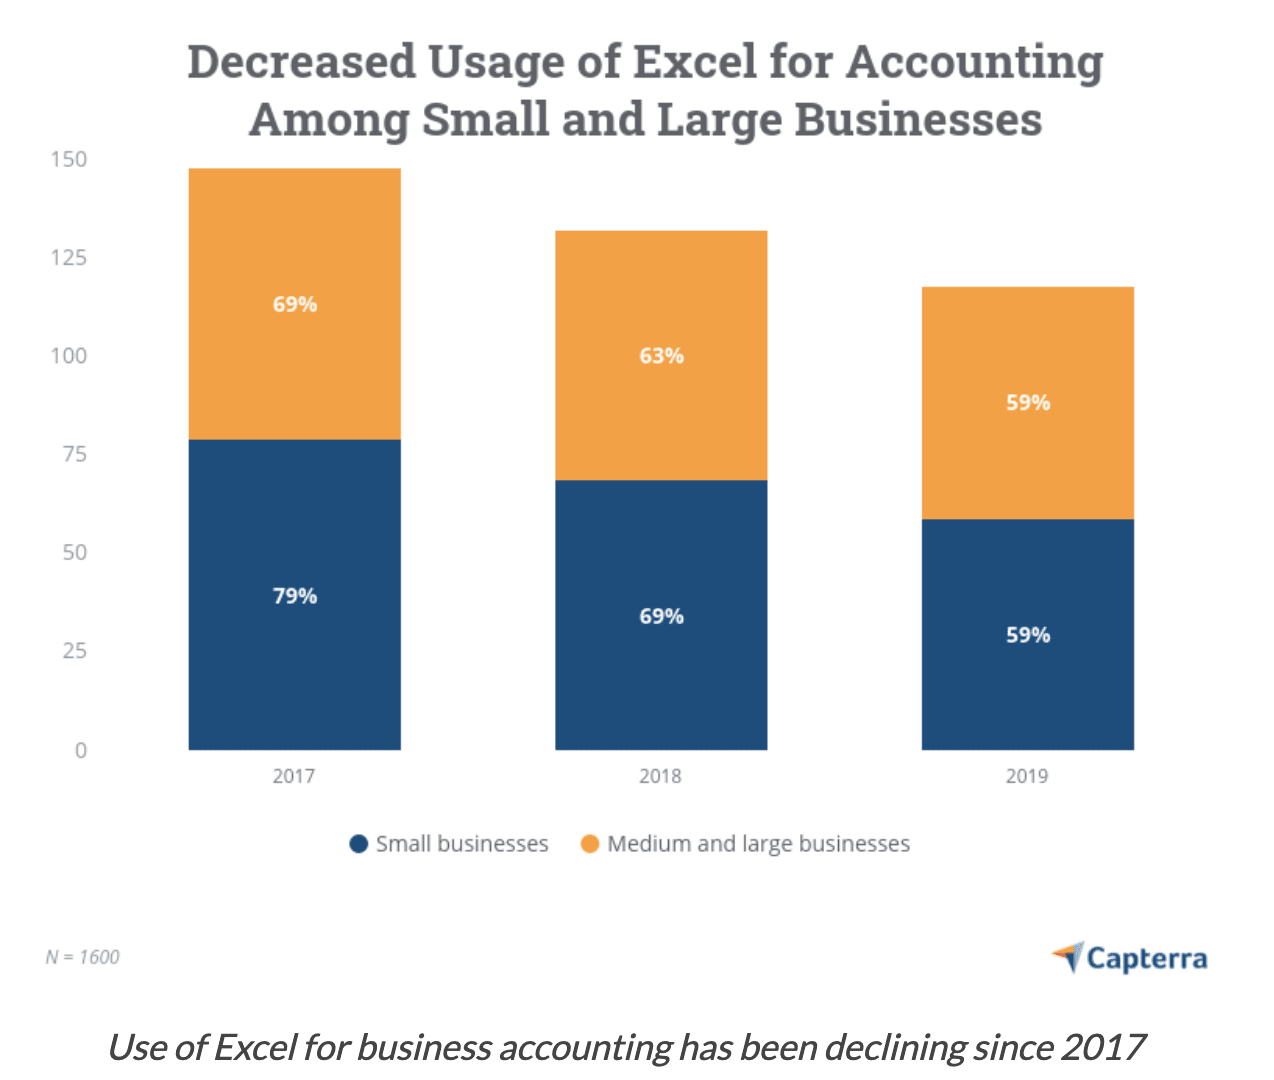 Declining use of Excel for accounting